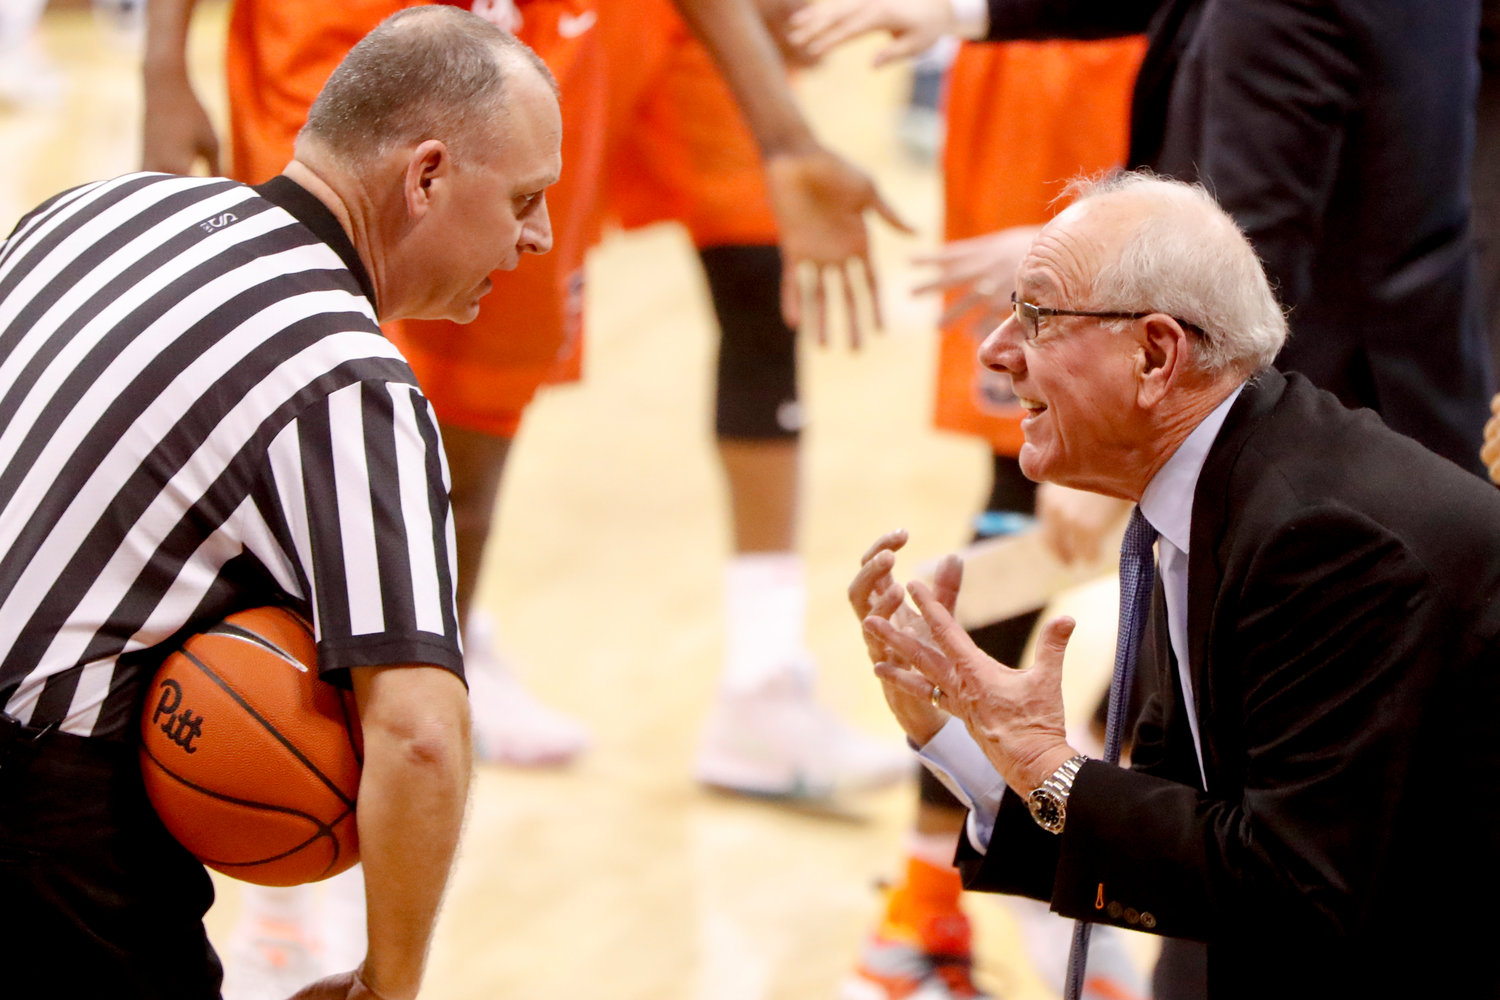 PLEADING HIS CASE — Syracuse coach Jim Boeheim goes one-on-one with an official during Saturday's ACC game against Pittsburgh. The Orange posted a 65-56 road win.